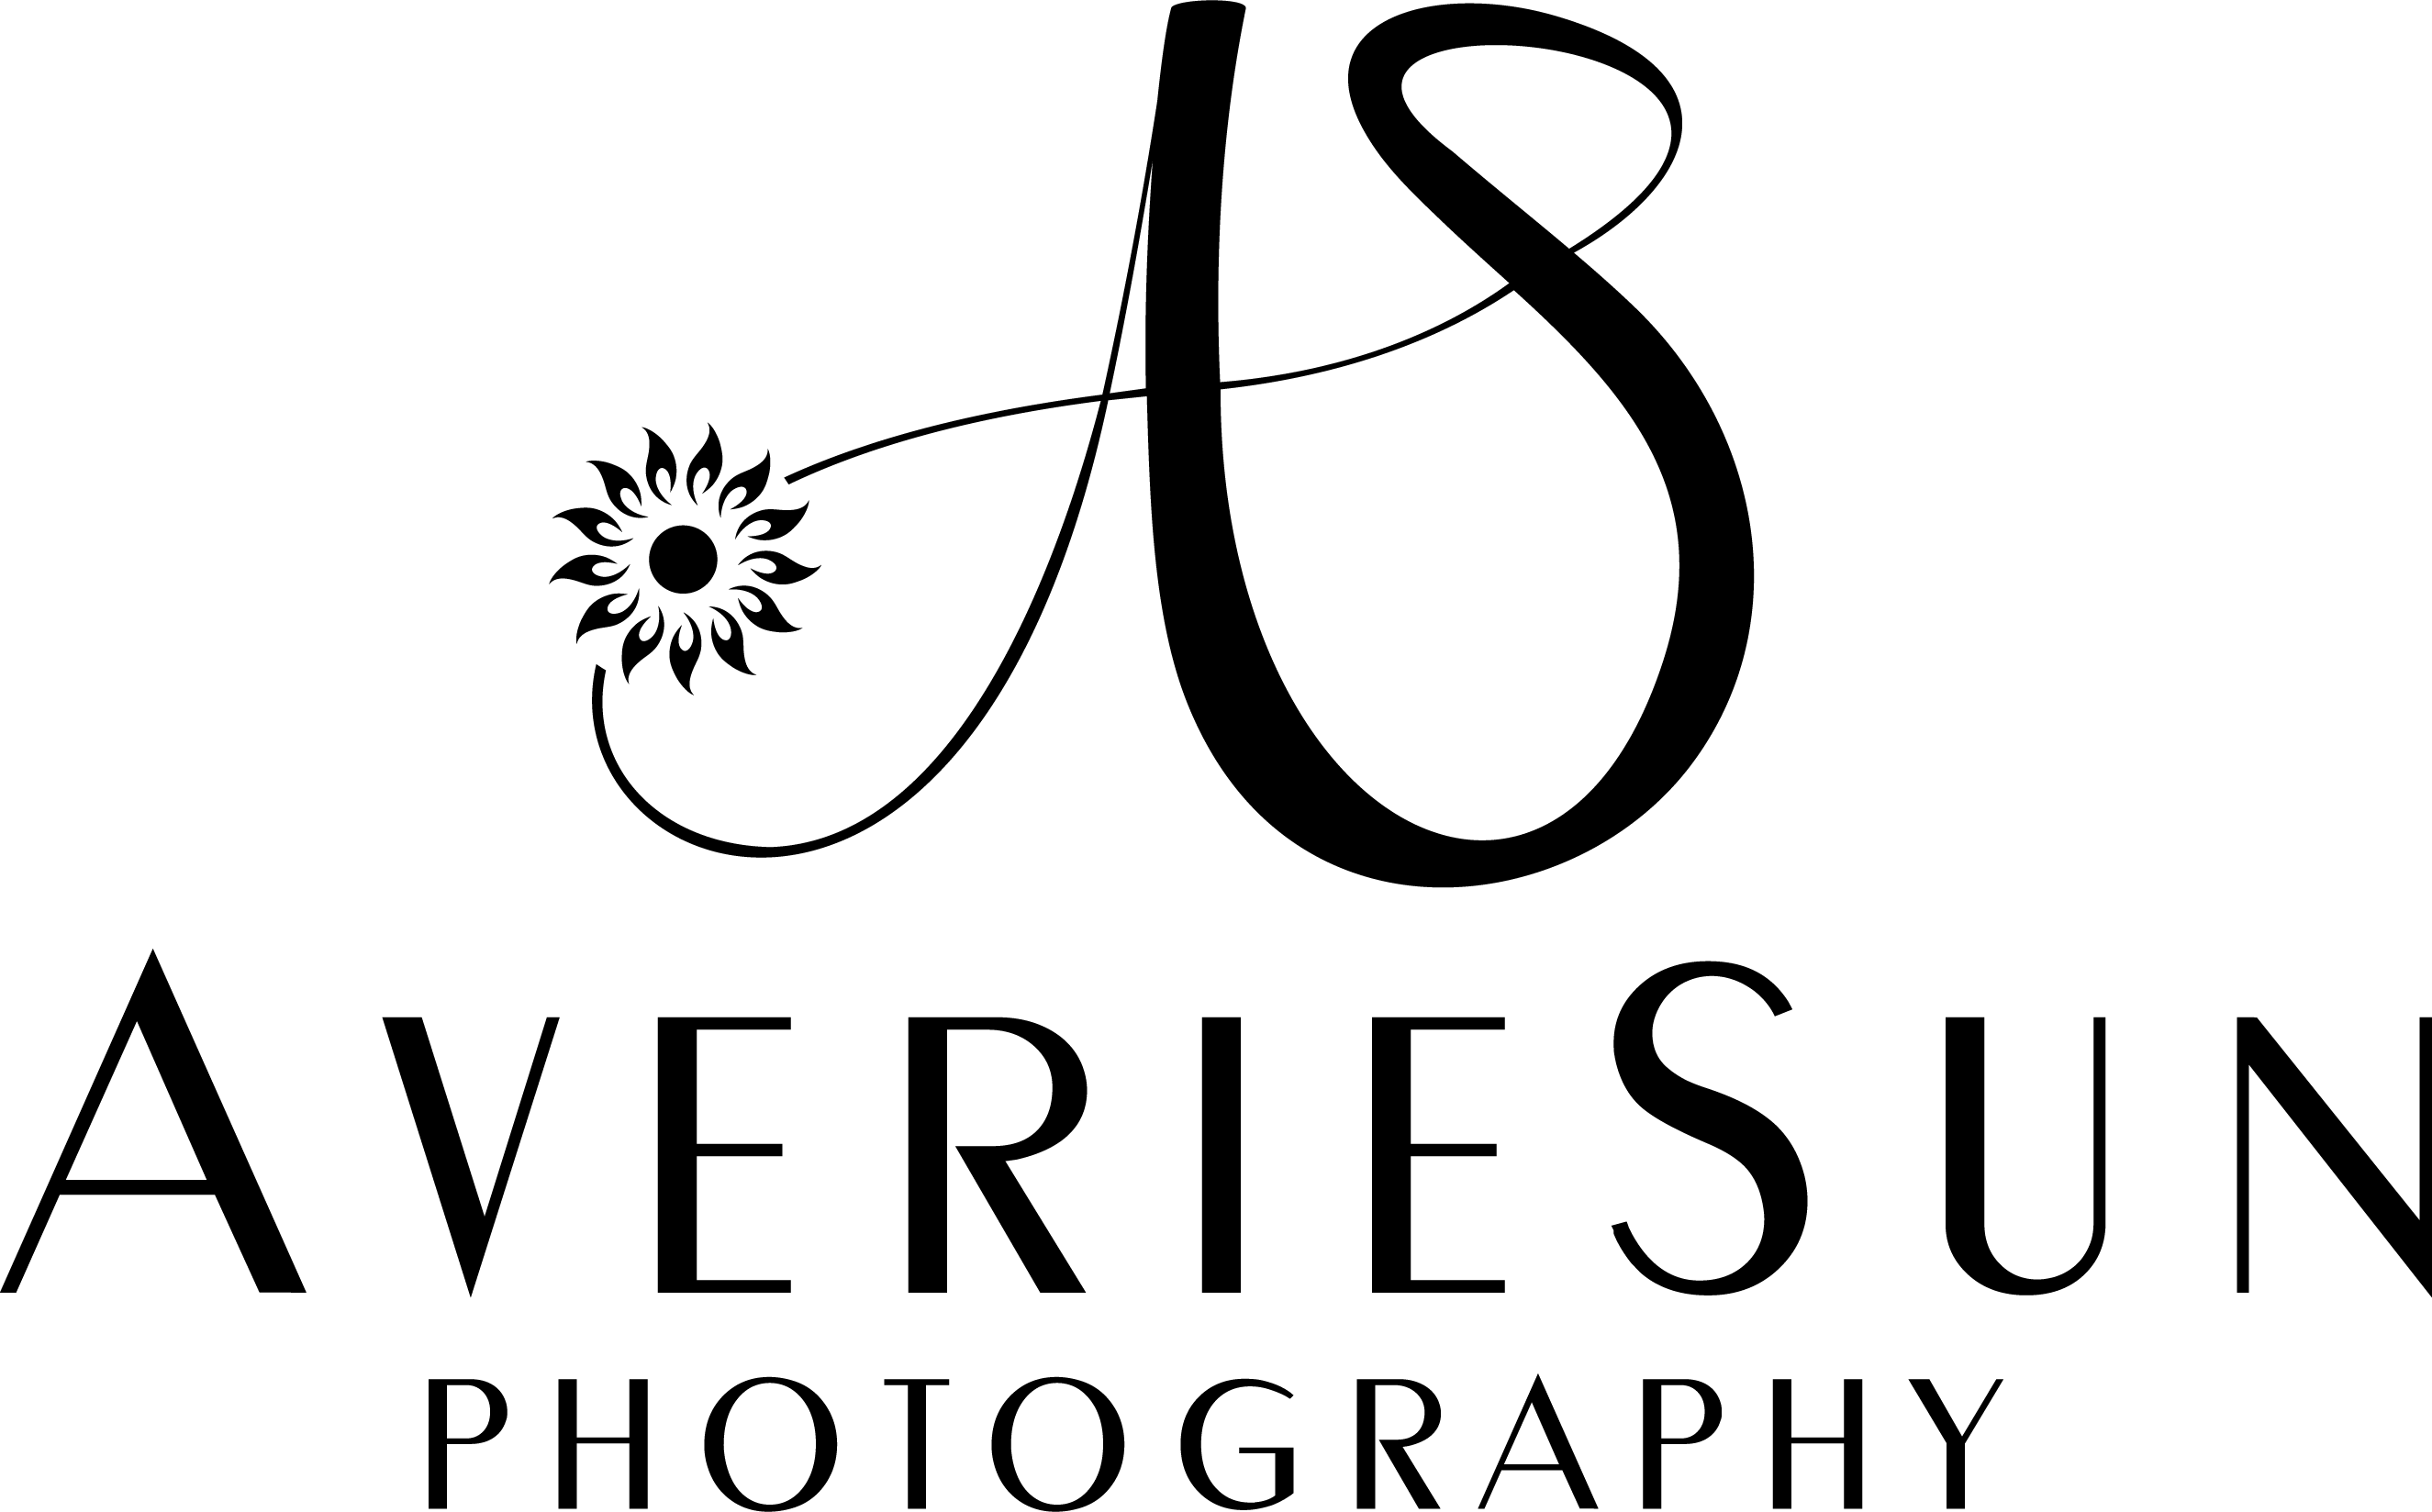 AverieSun Photography